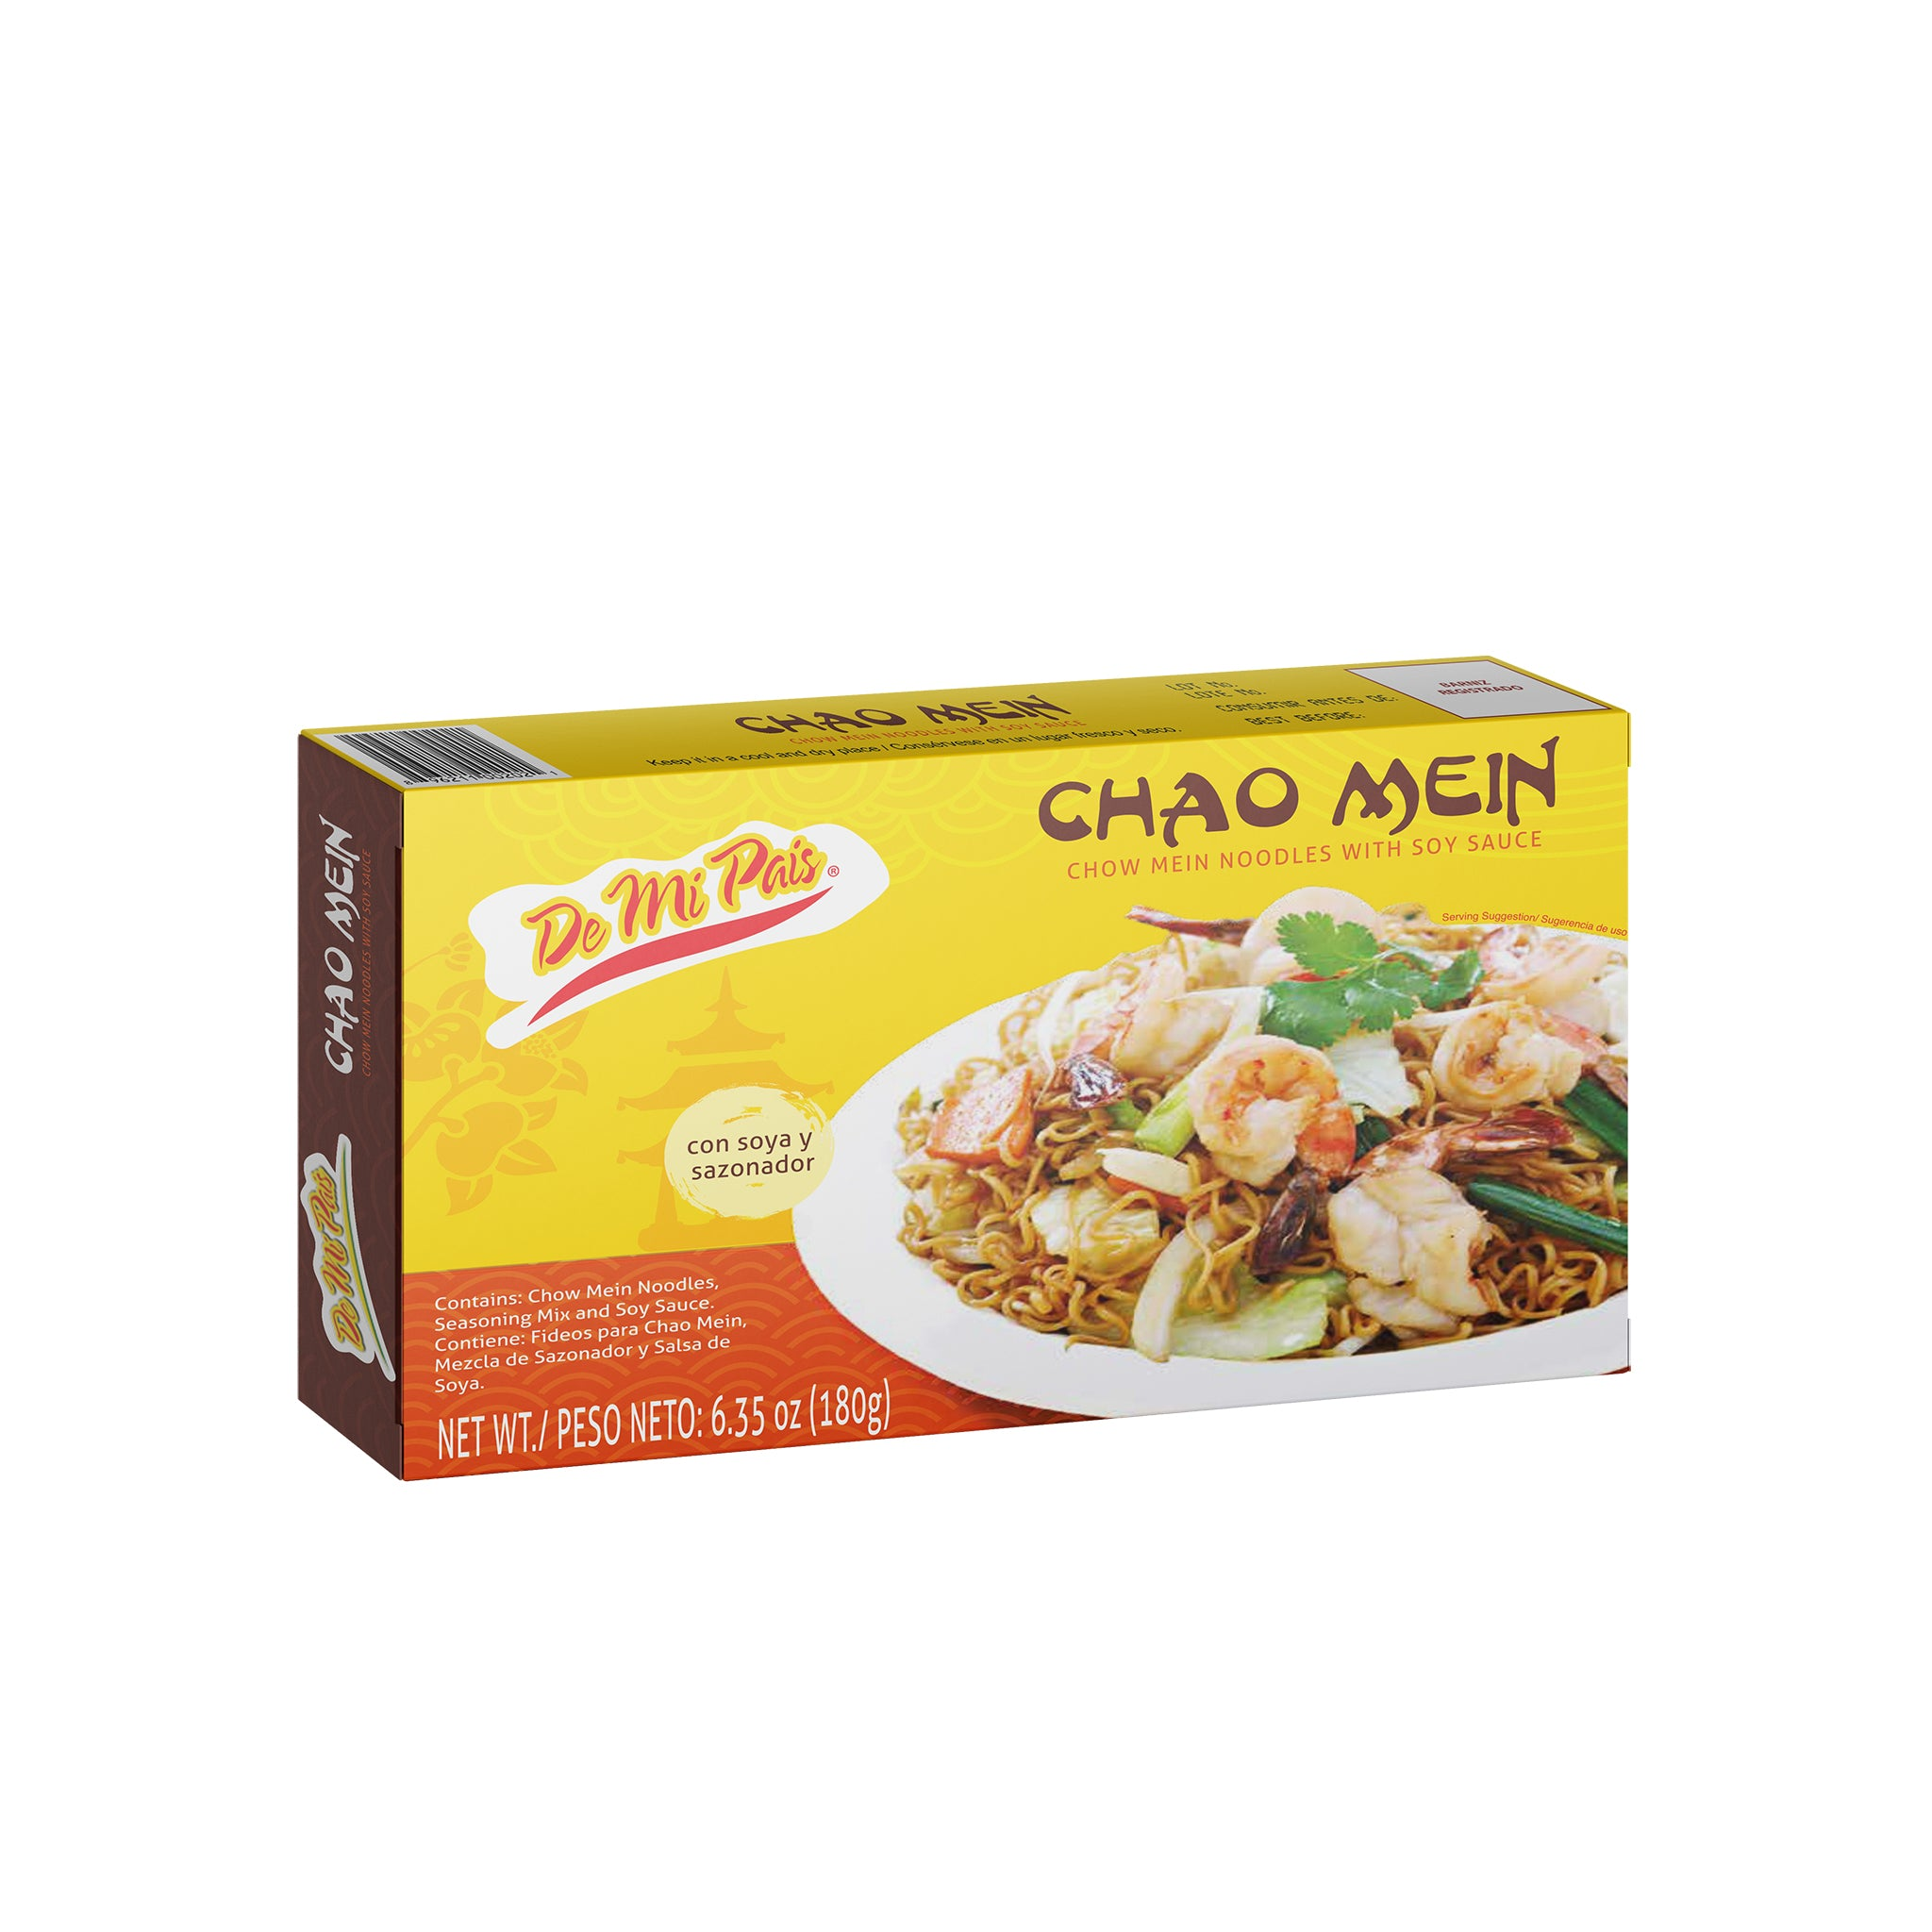 Small Chao Mein Noodles / Chow Mein con Salsa Soya Pequeña 12-Pack